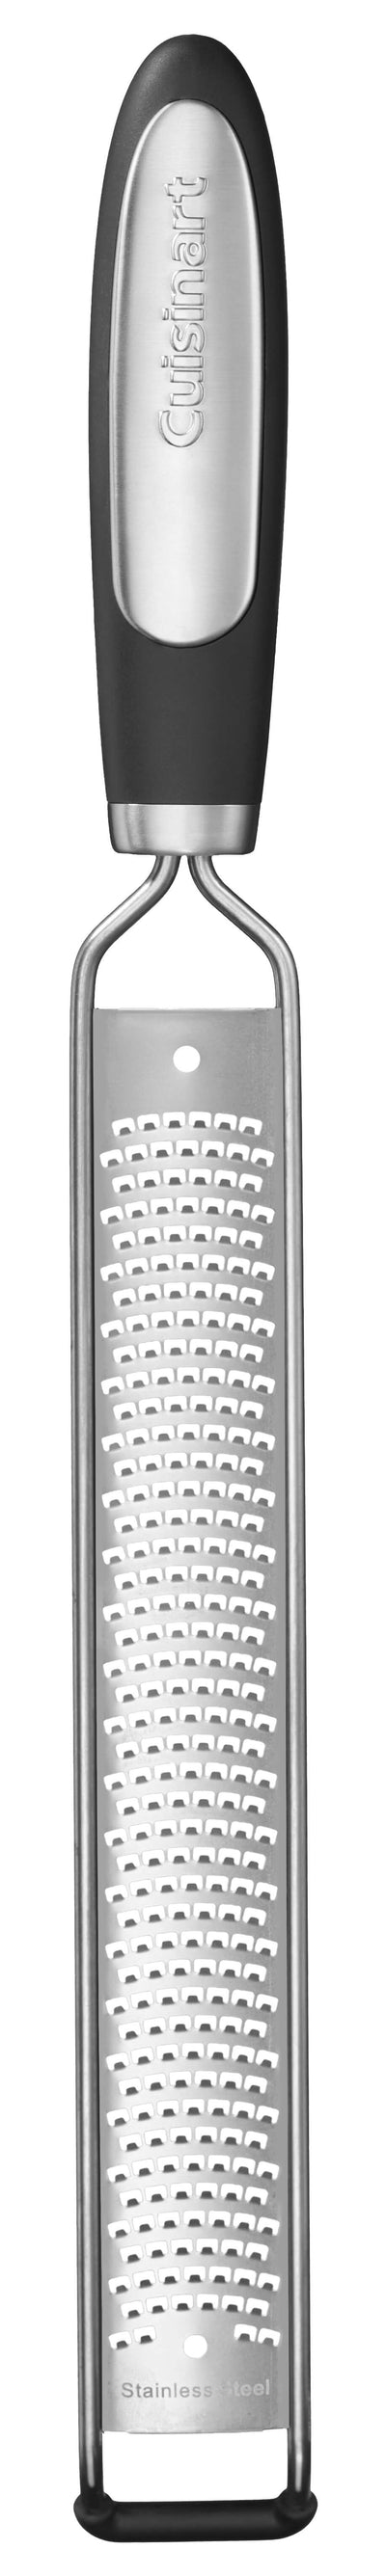 Cuisinart Fine Cut Long Grater